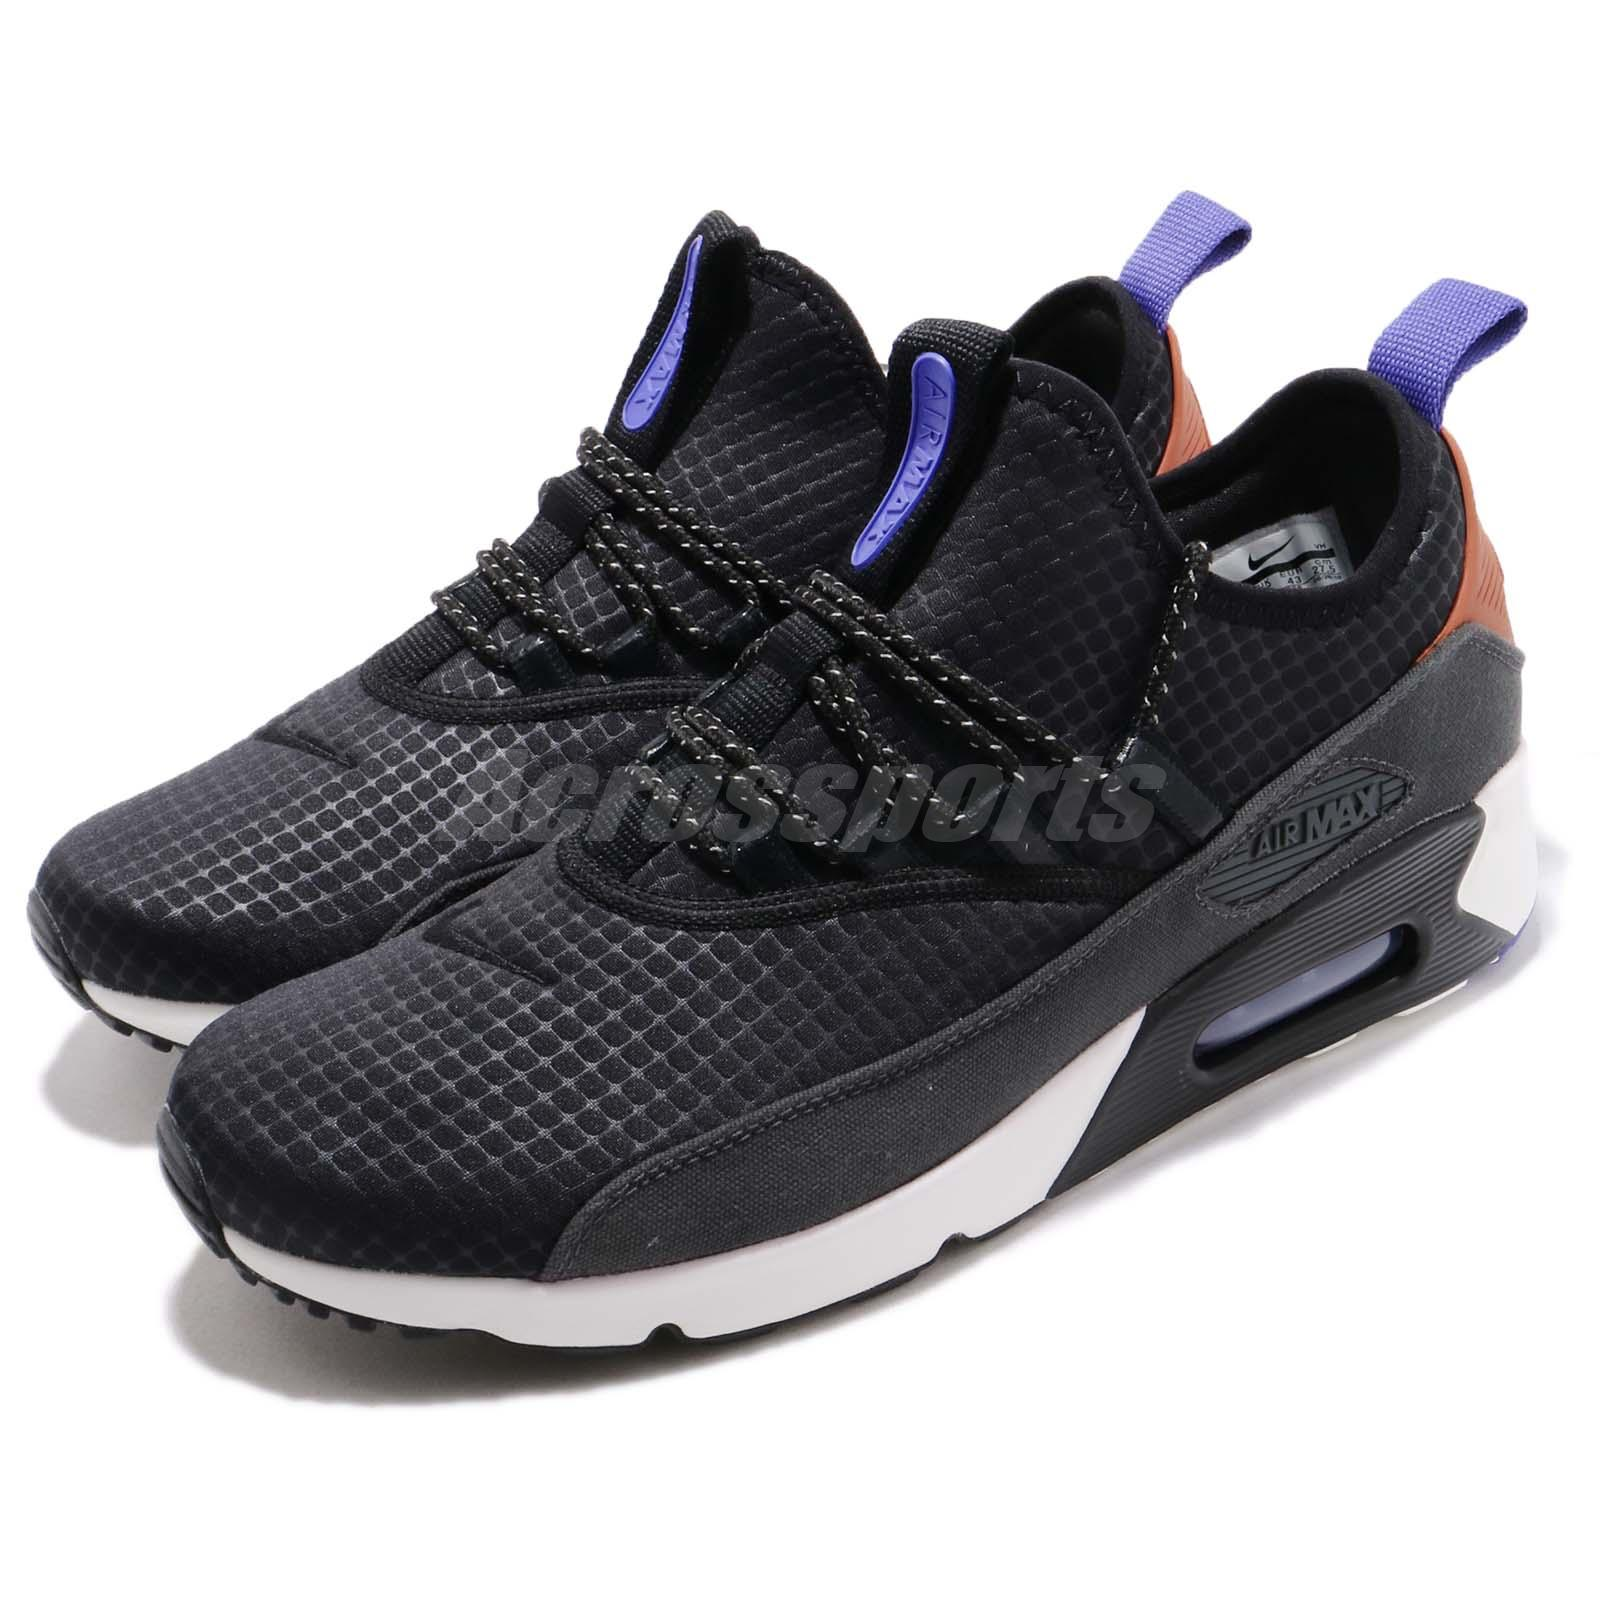 finest selection e3834 d96b3 Details about Nike Air Max 90 EZ Black White Purple Men Running Shoes  Sneakers AO1745-008